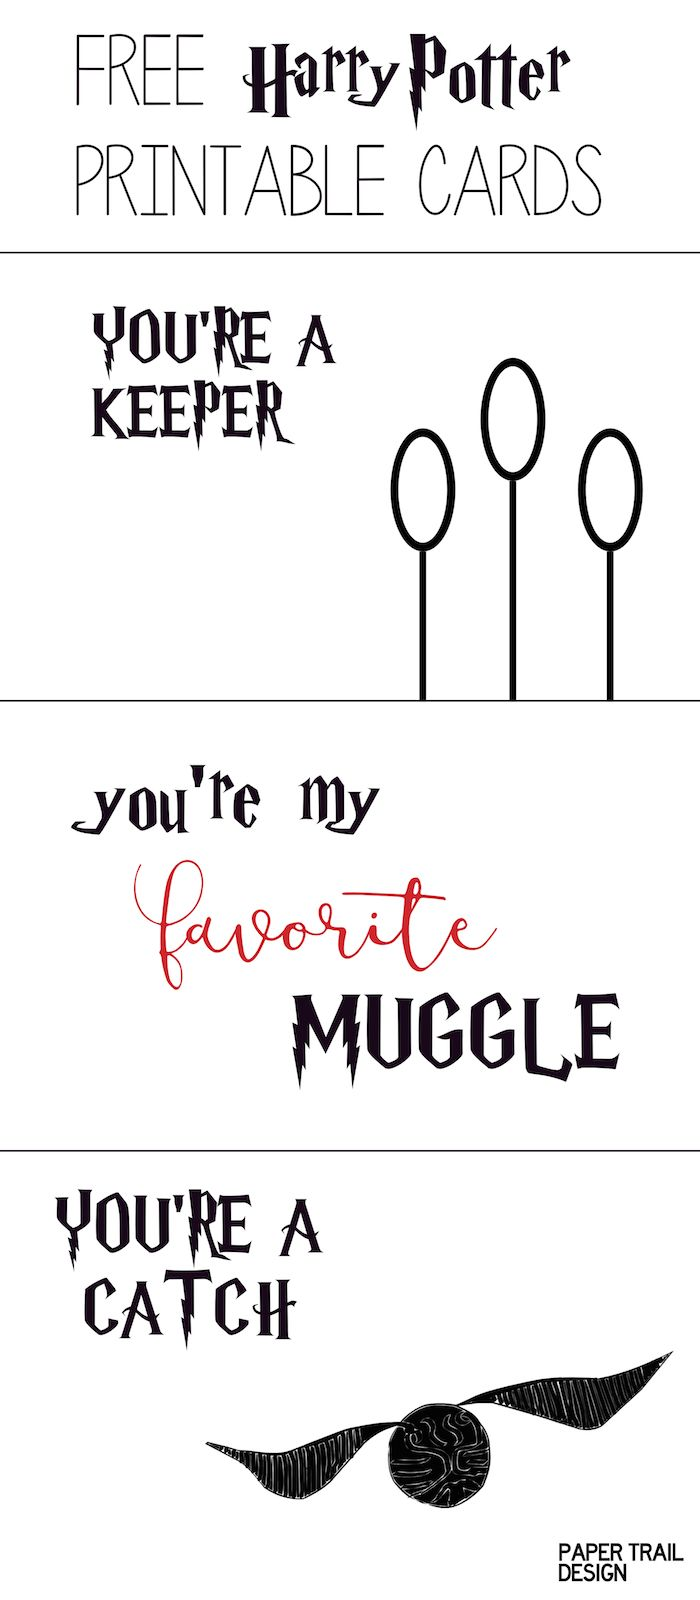 Tactueux image for free printable harry potter birthday cards